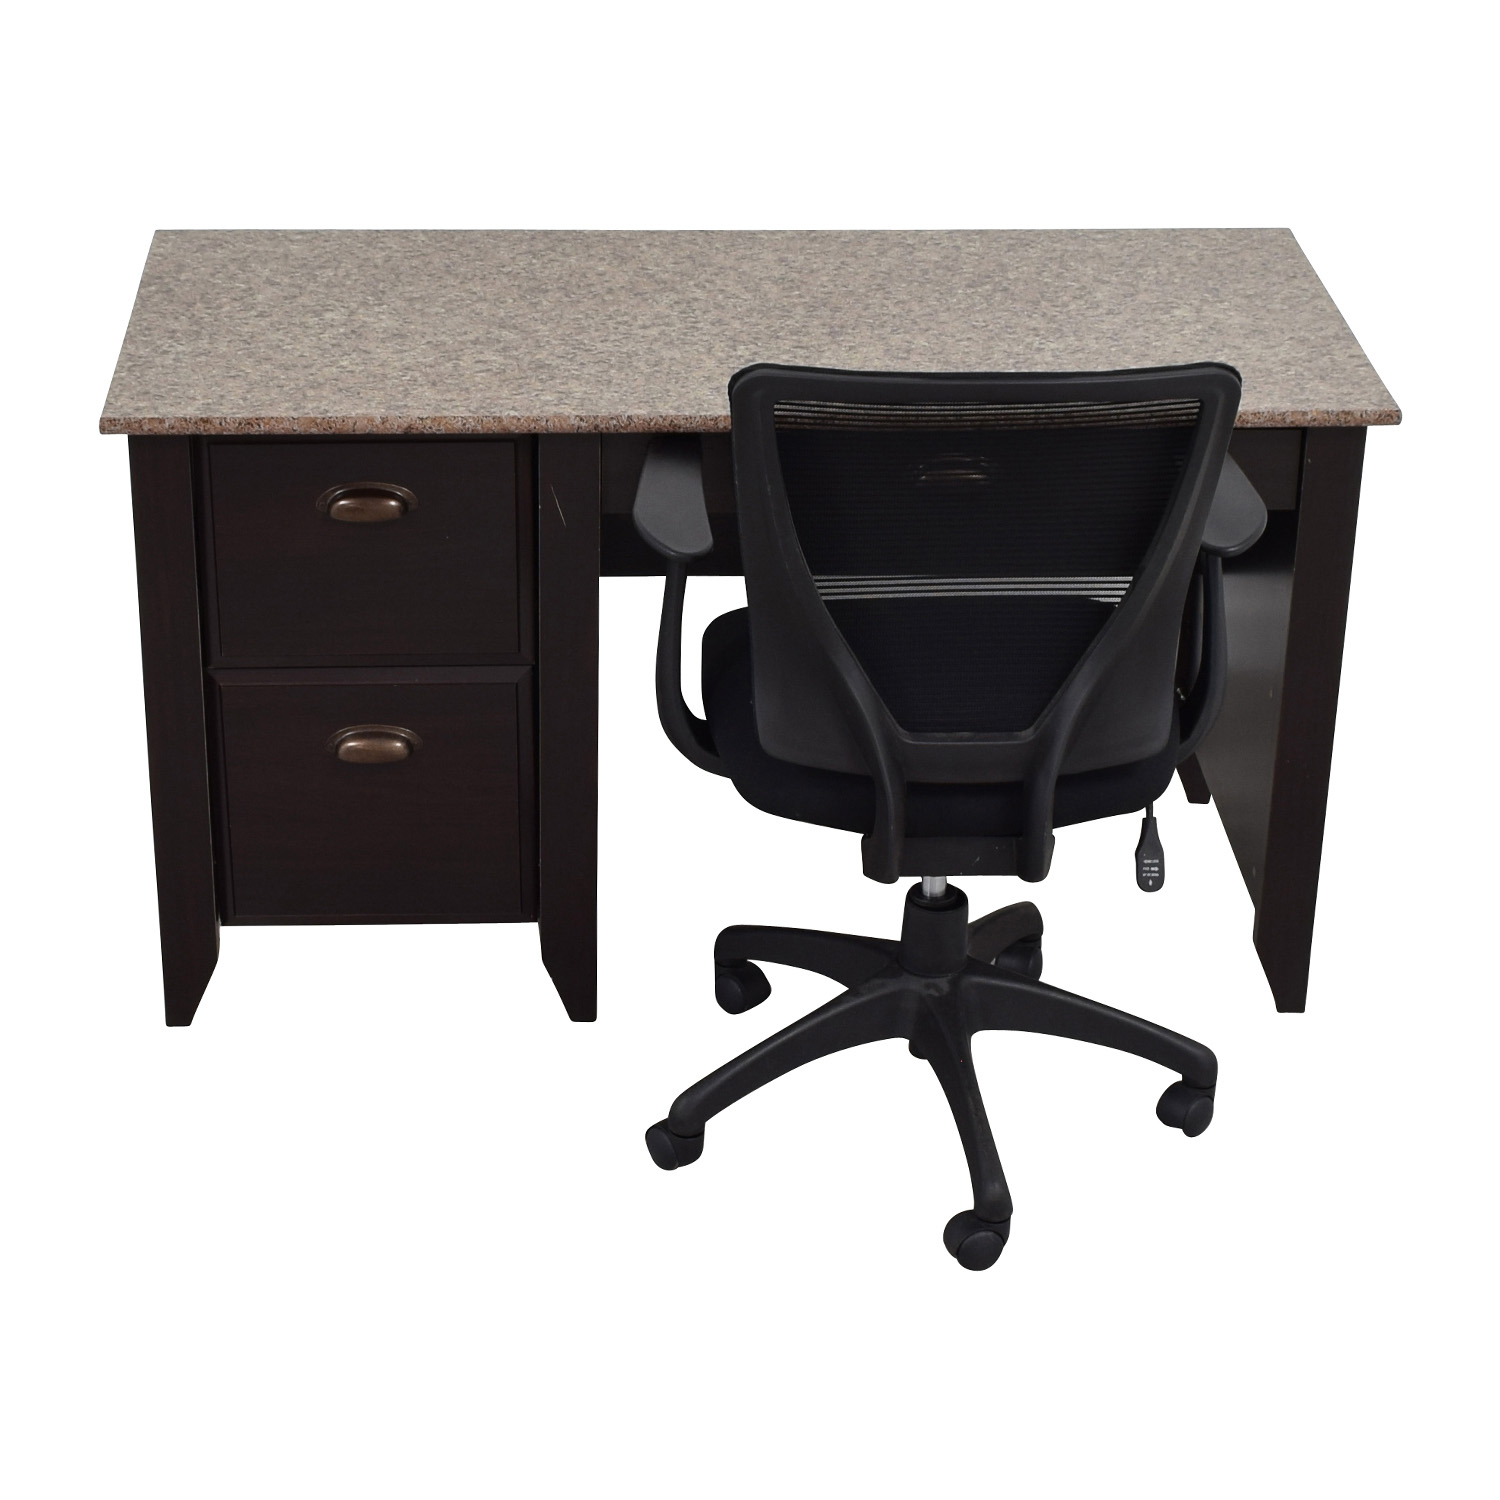 Computer Table with Office Chair for sale